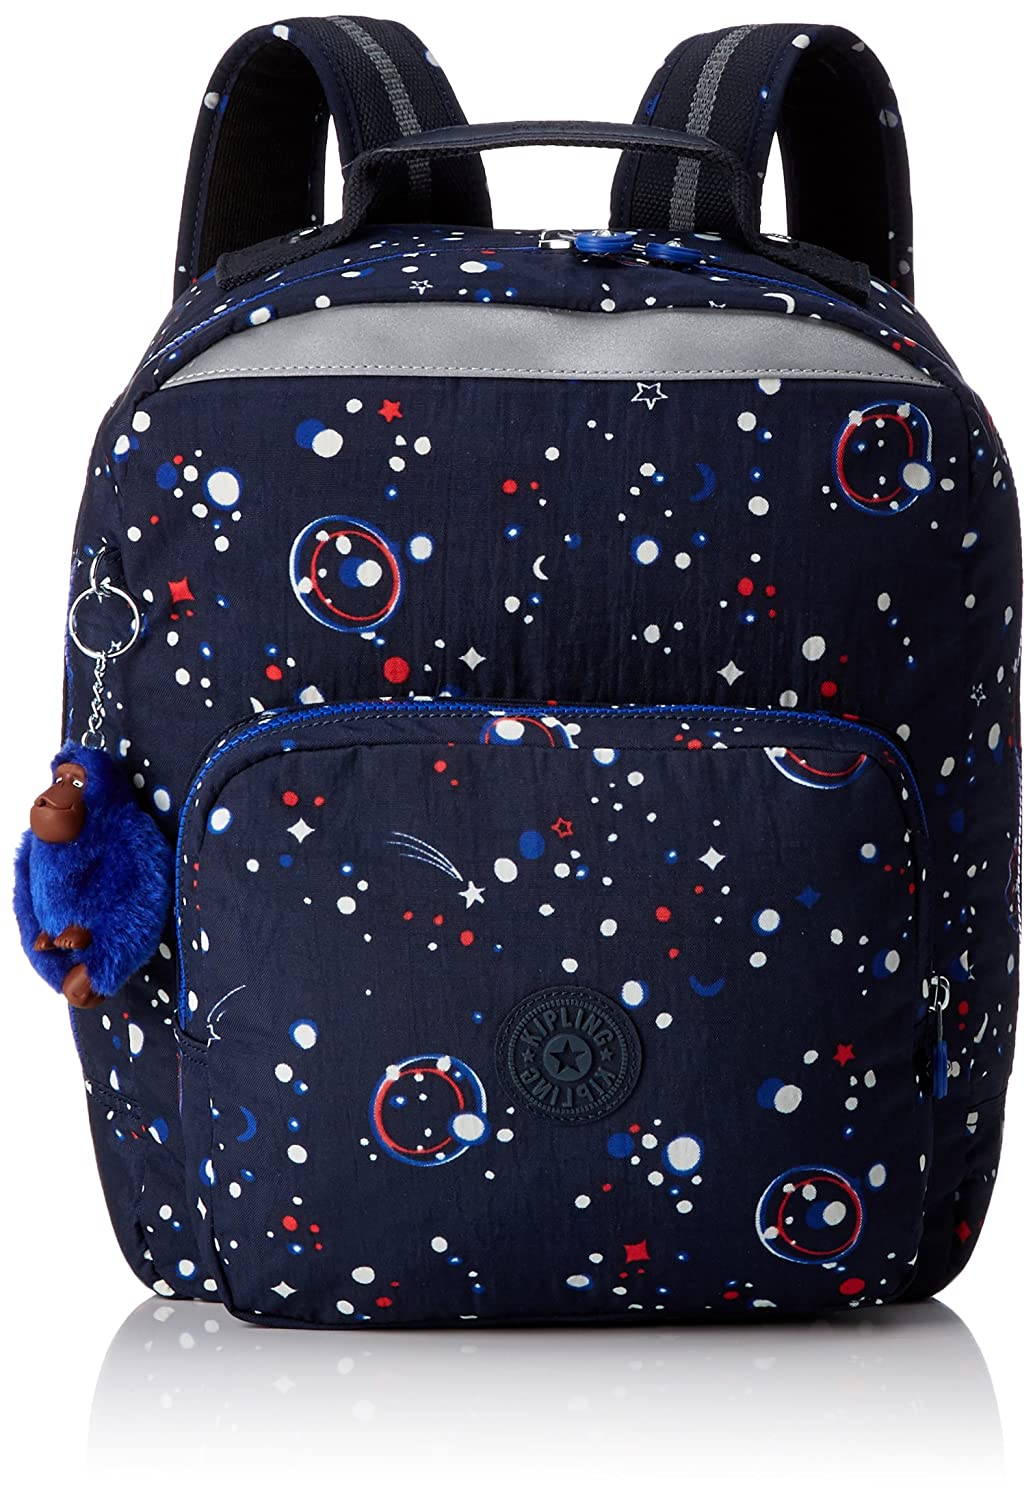 Galaxy Party Kipling - AVA - Mittelgroßer Rucksack - Galaxy Party - (MultiFarbe)